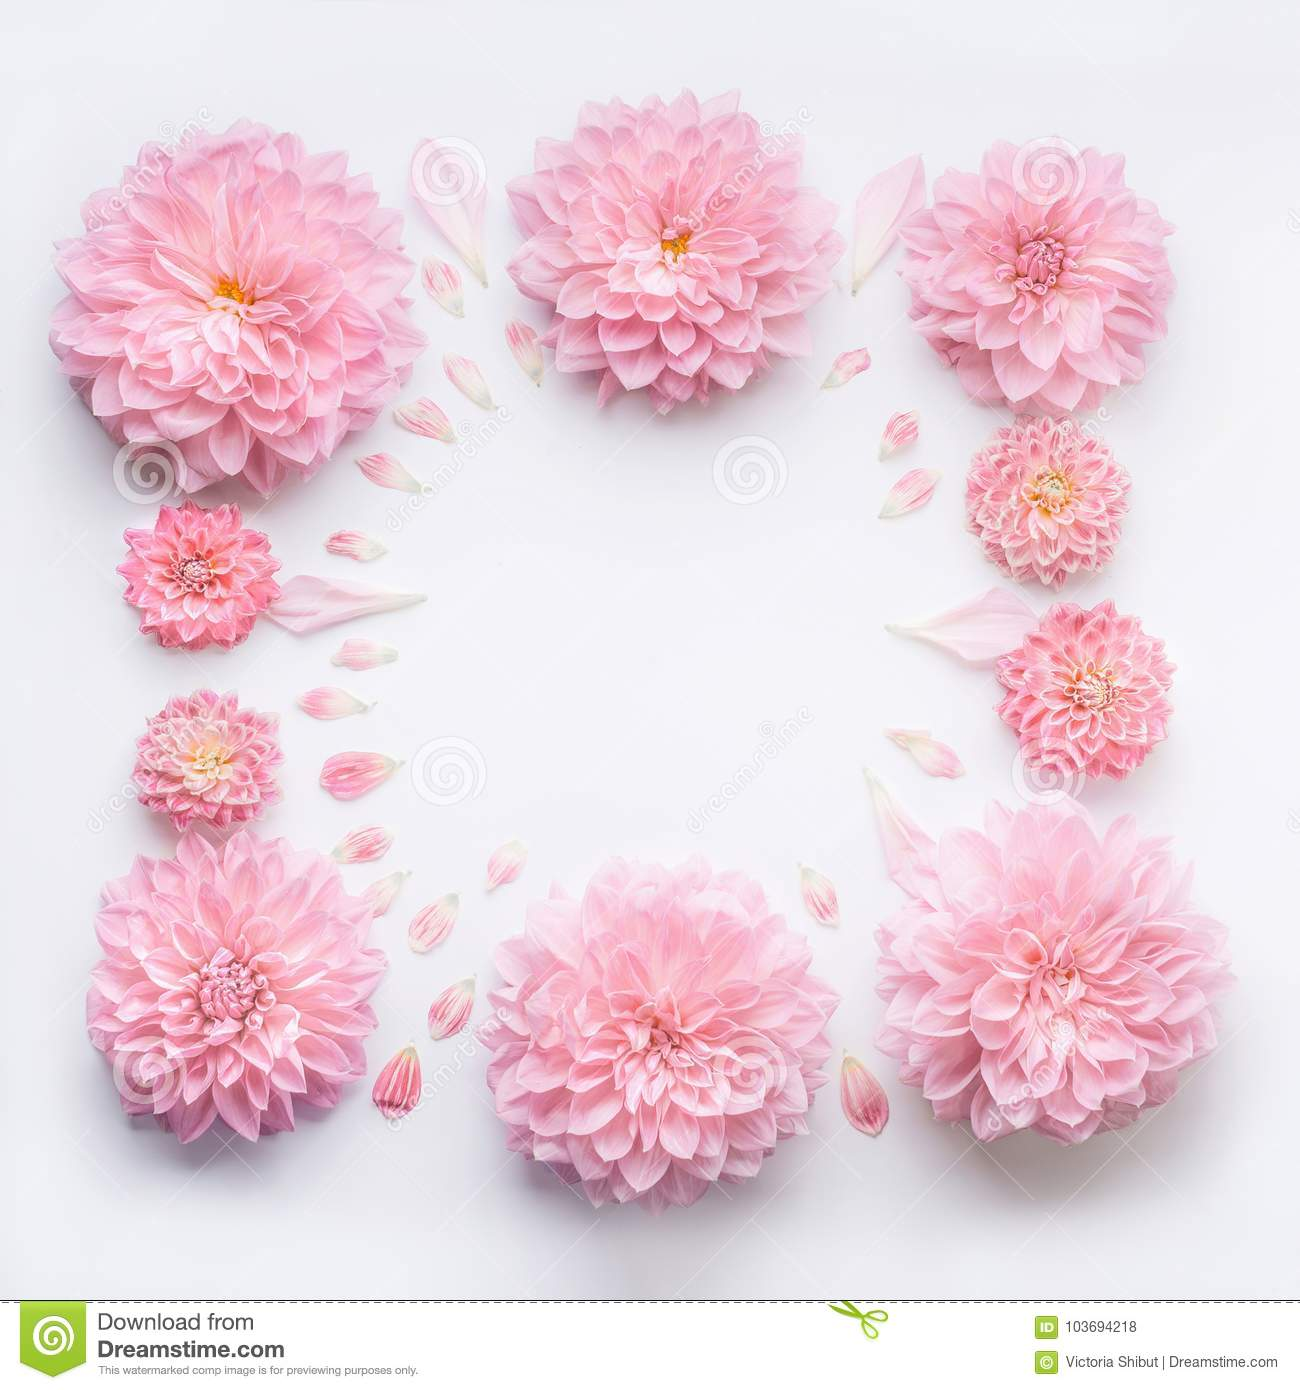 Frame Of Pink Pale Flowers With Petals On White Desktop Background